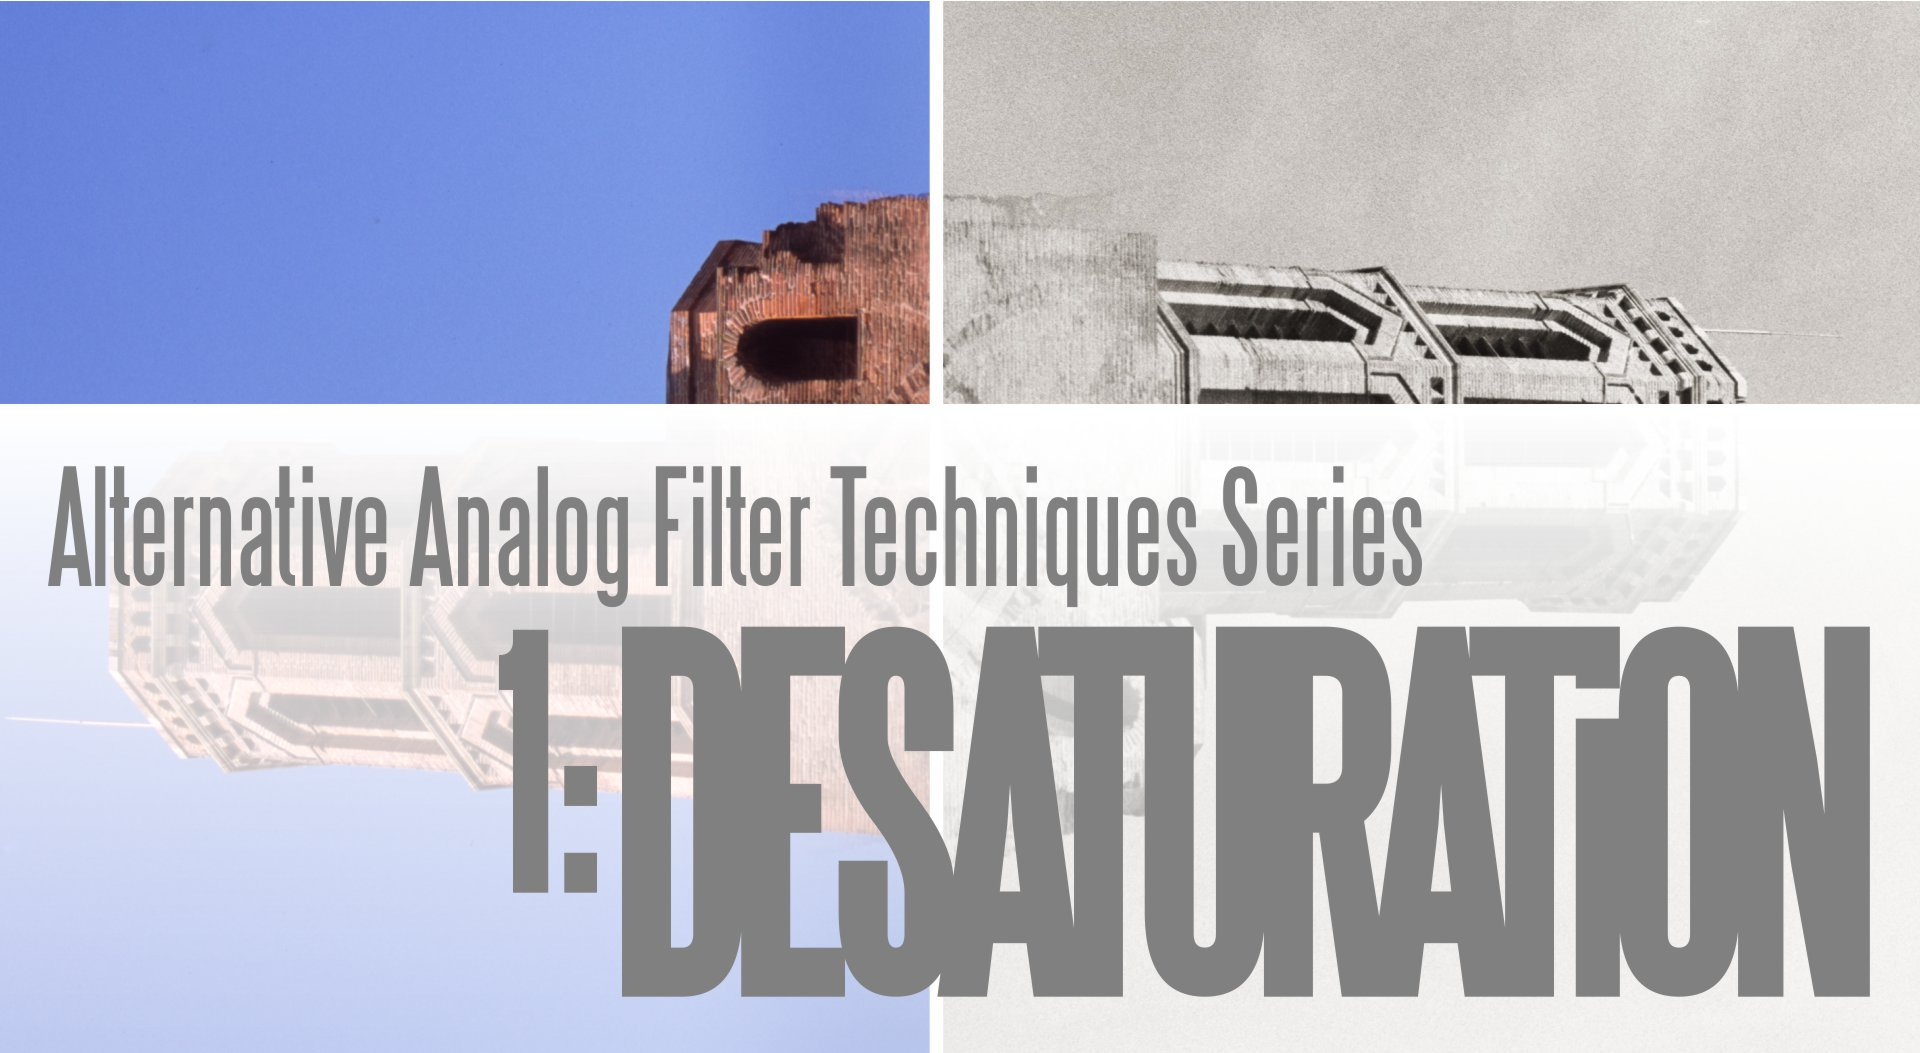 Alternative Analog Filter Techniques Series desaturation